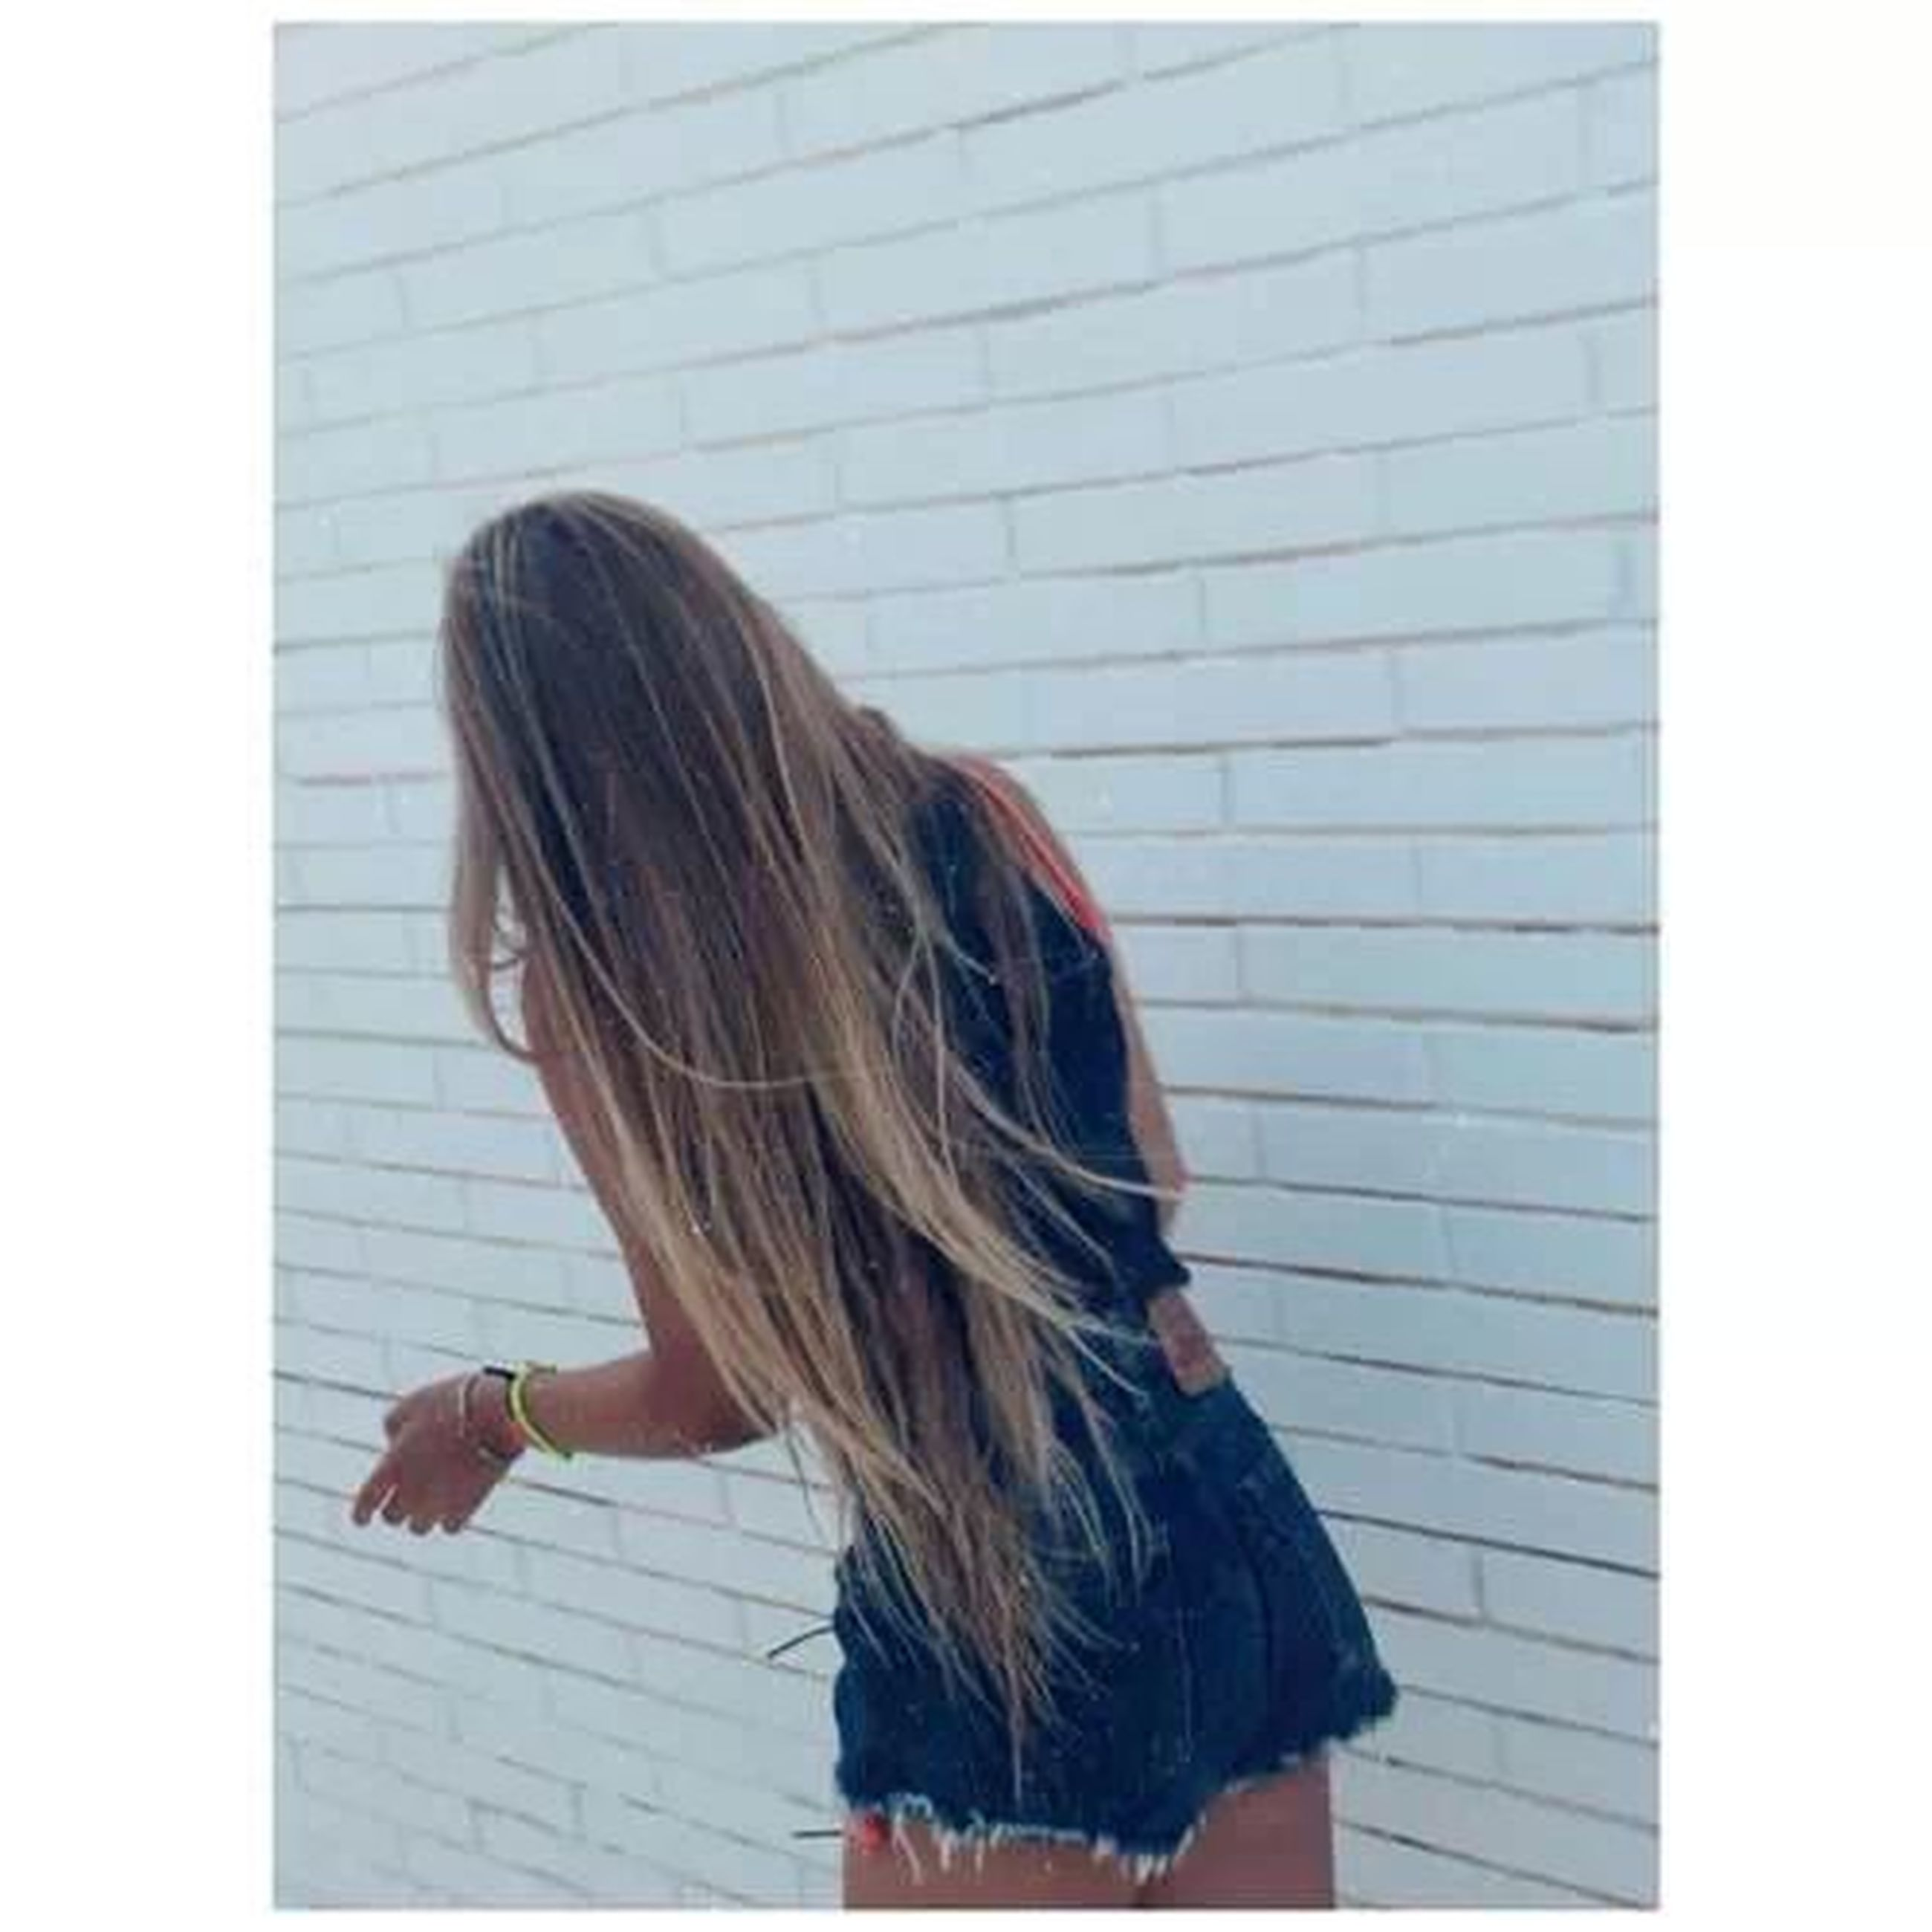 transfer print, long hair, lifestyles, auto post production filter, young women, person, leisure activity, young adult, rear view, indoors, waist up, casual clothing, brown hair, standing, side view, blond hair, wall - building feature